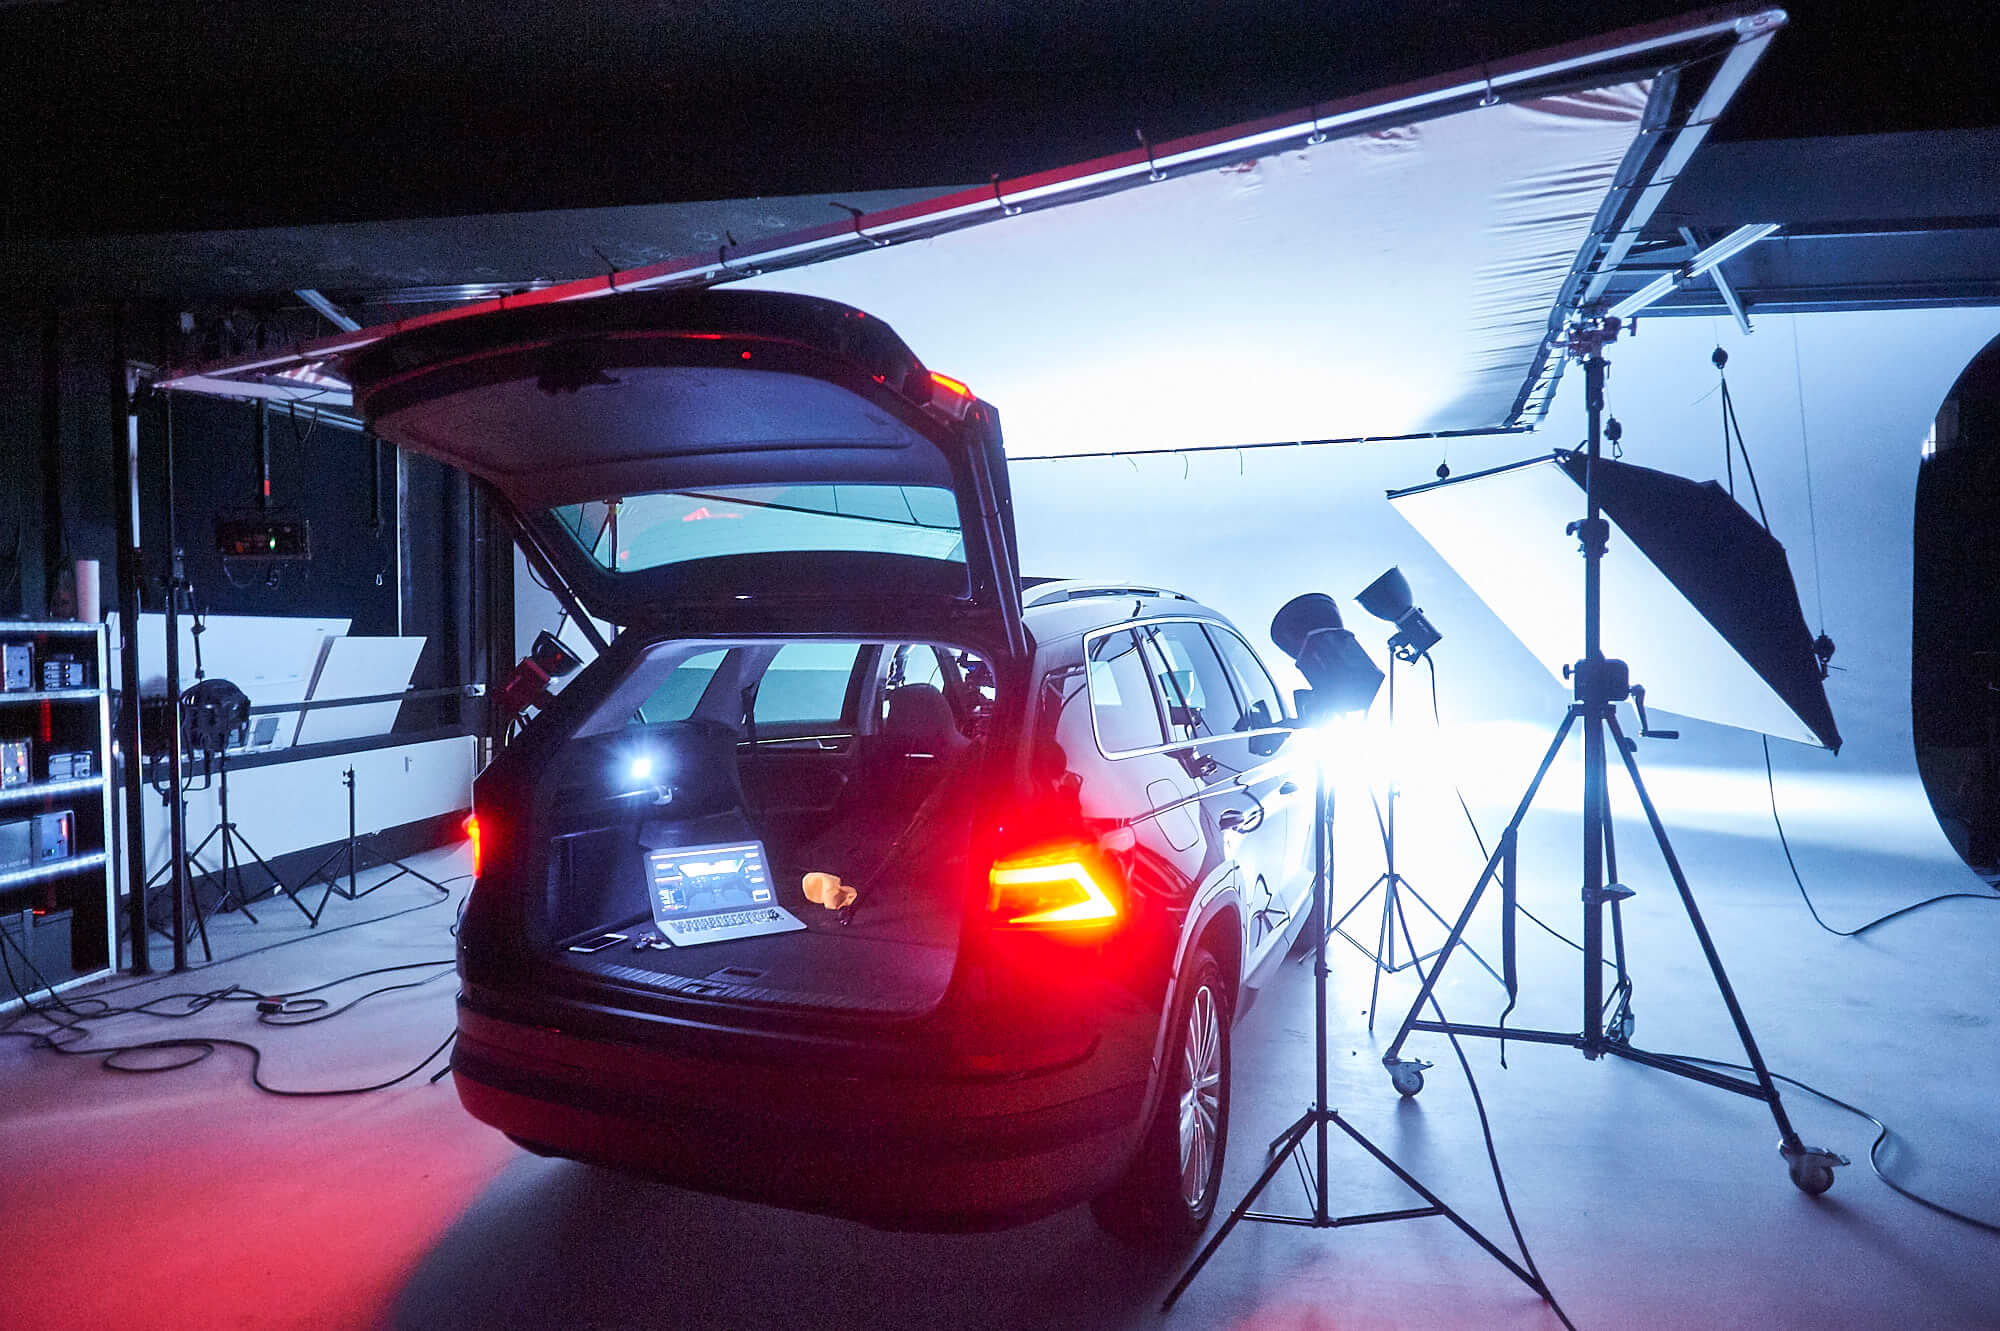 Skoda Kodiaq 4x4 Automobil Fotografie Making of Interior